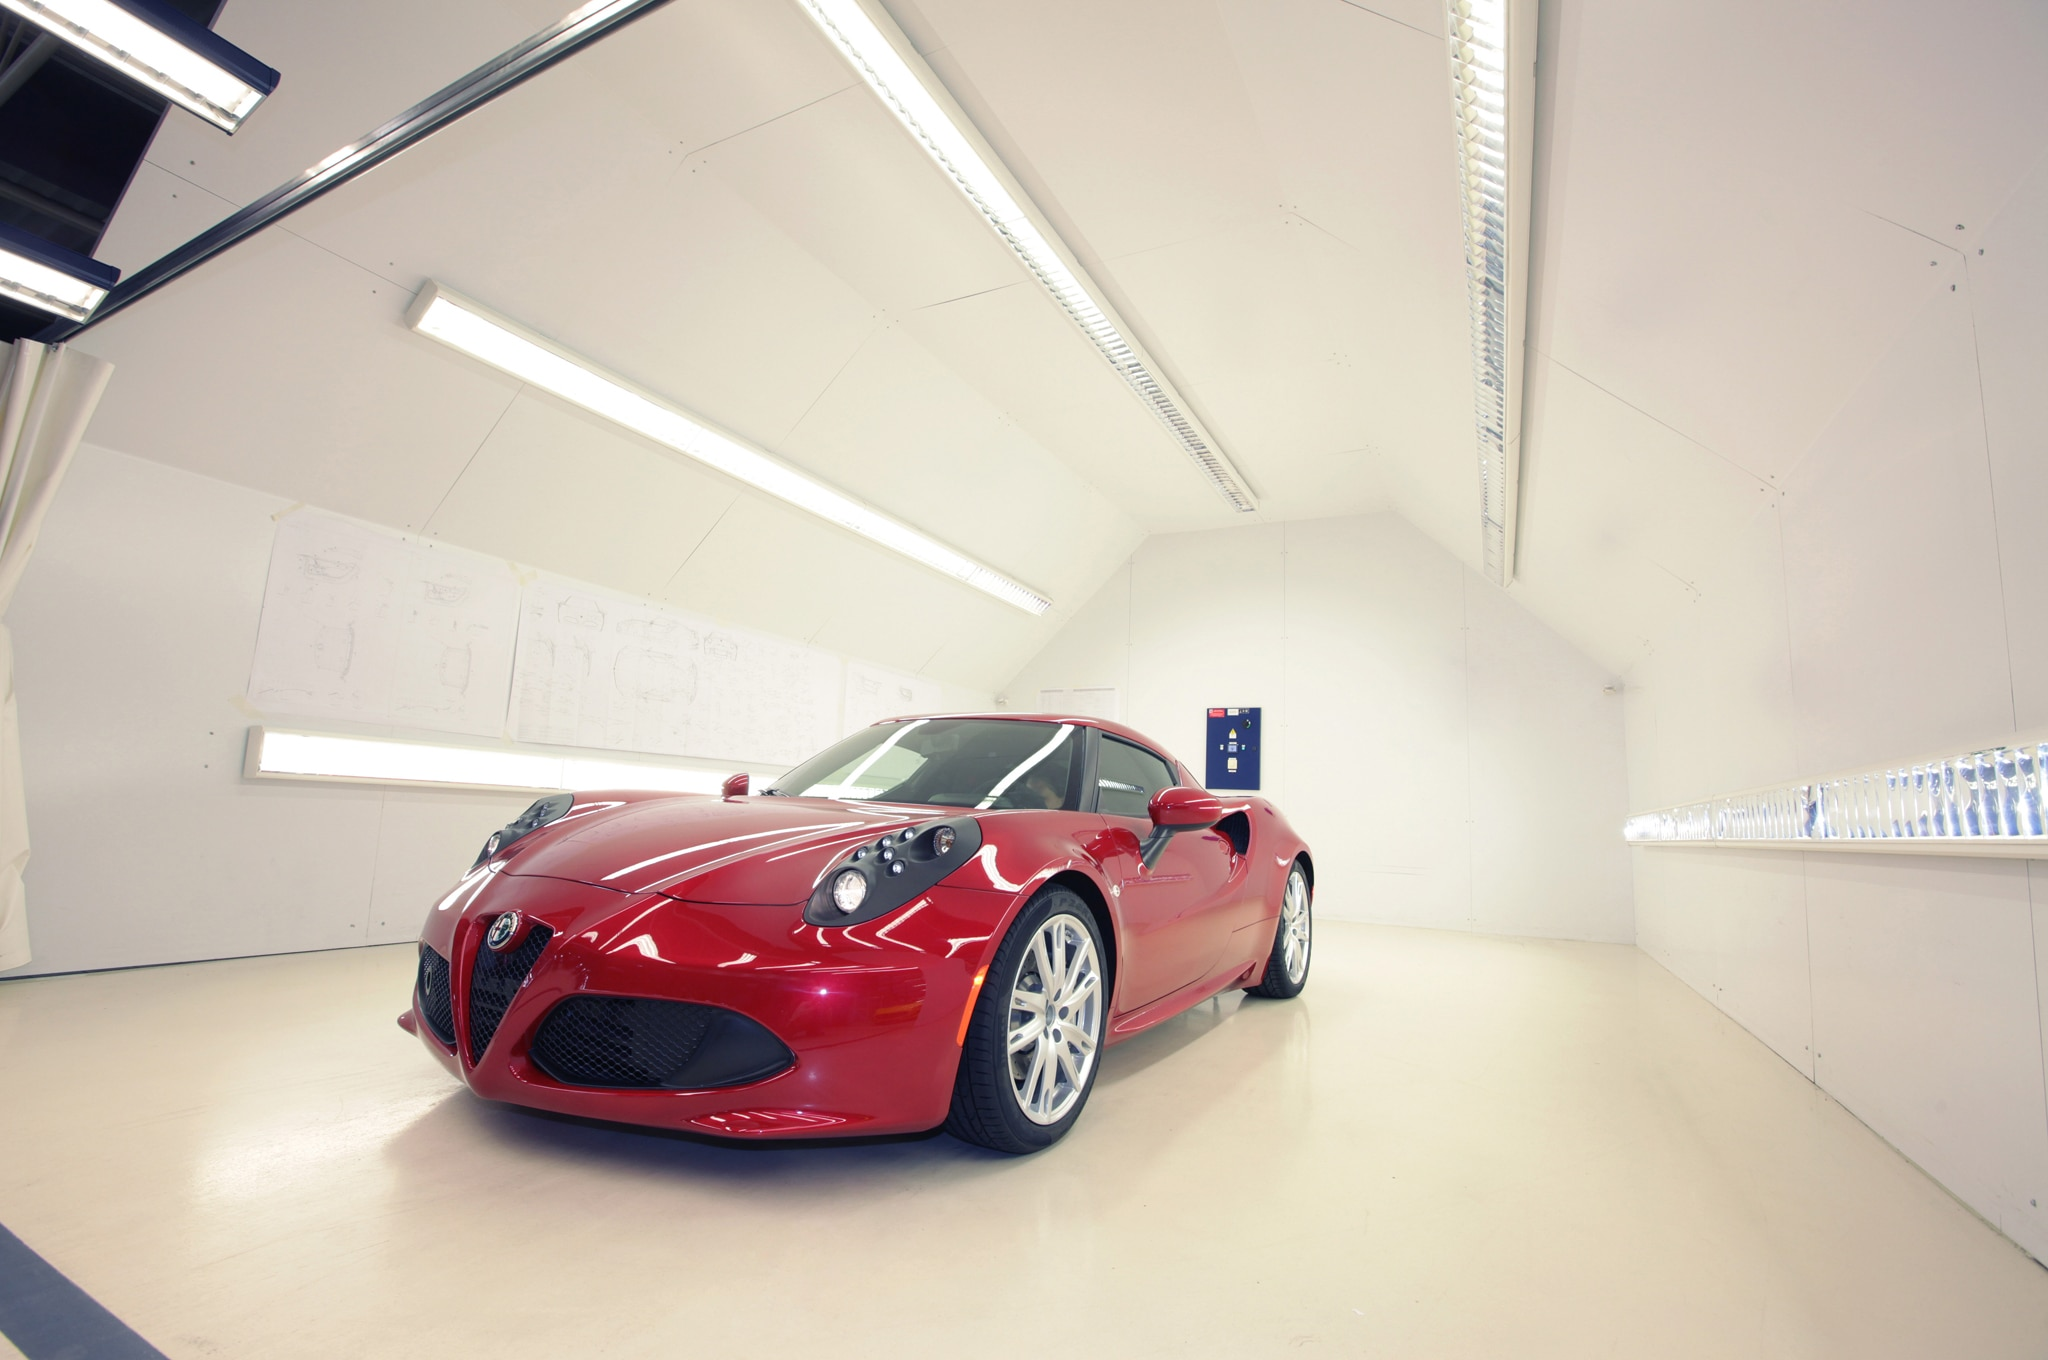 2014 Alfa Romeo 4C Front Three Quarter In Factory1